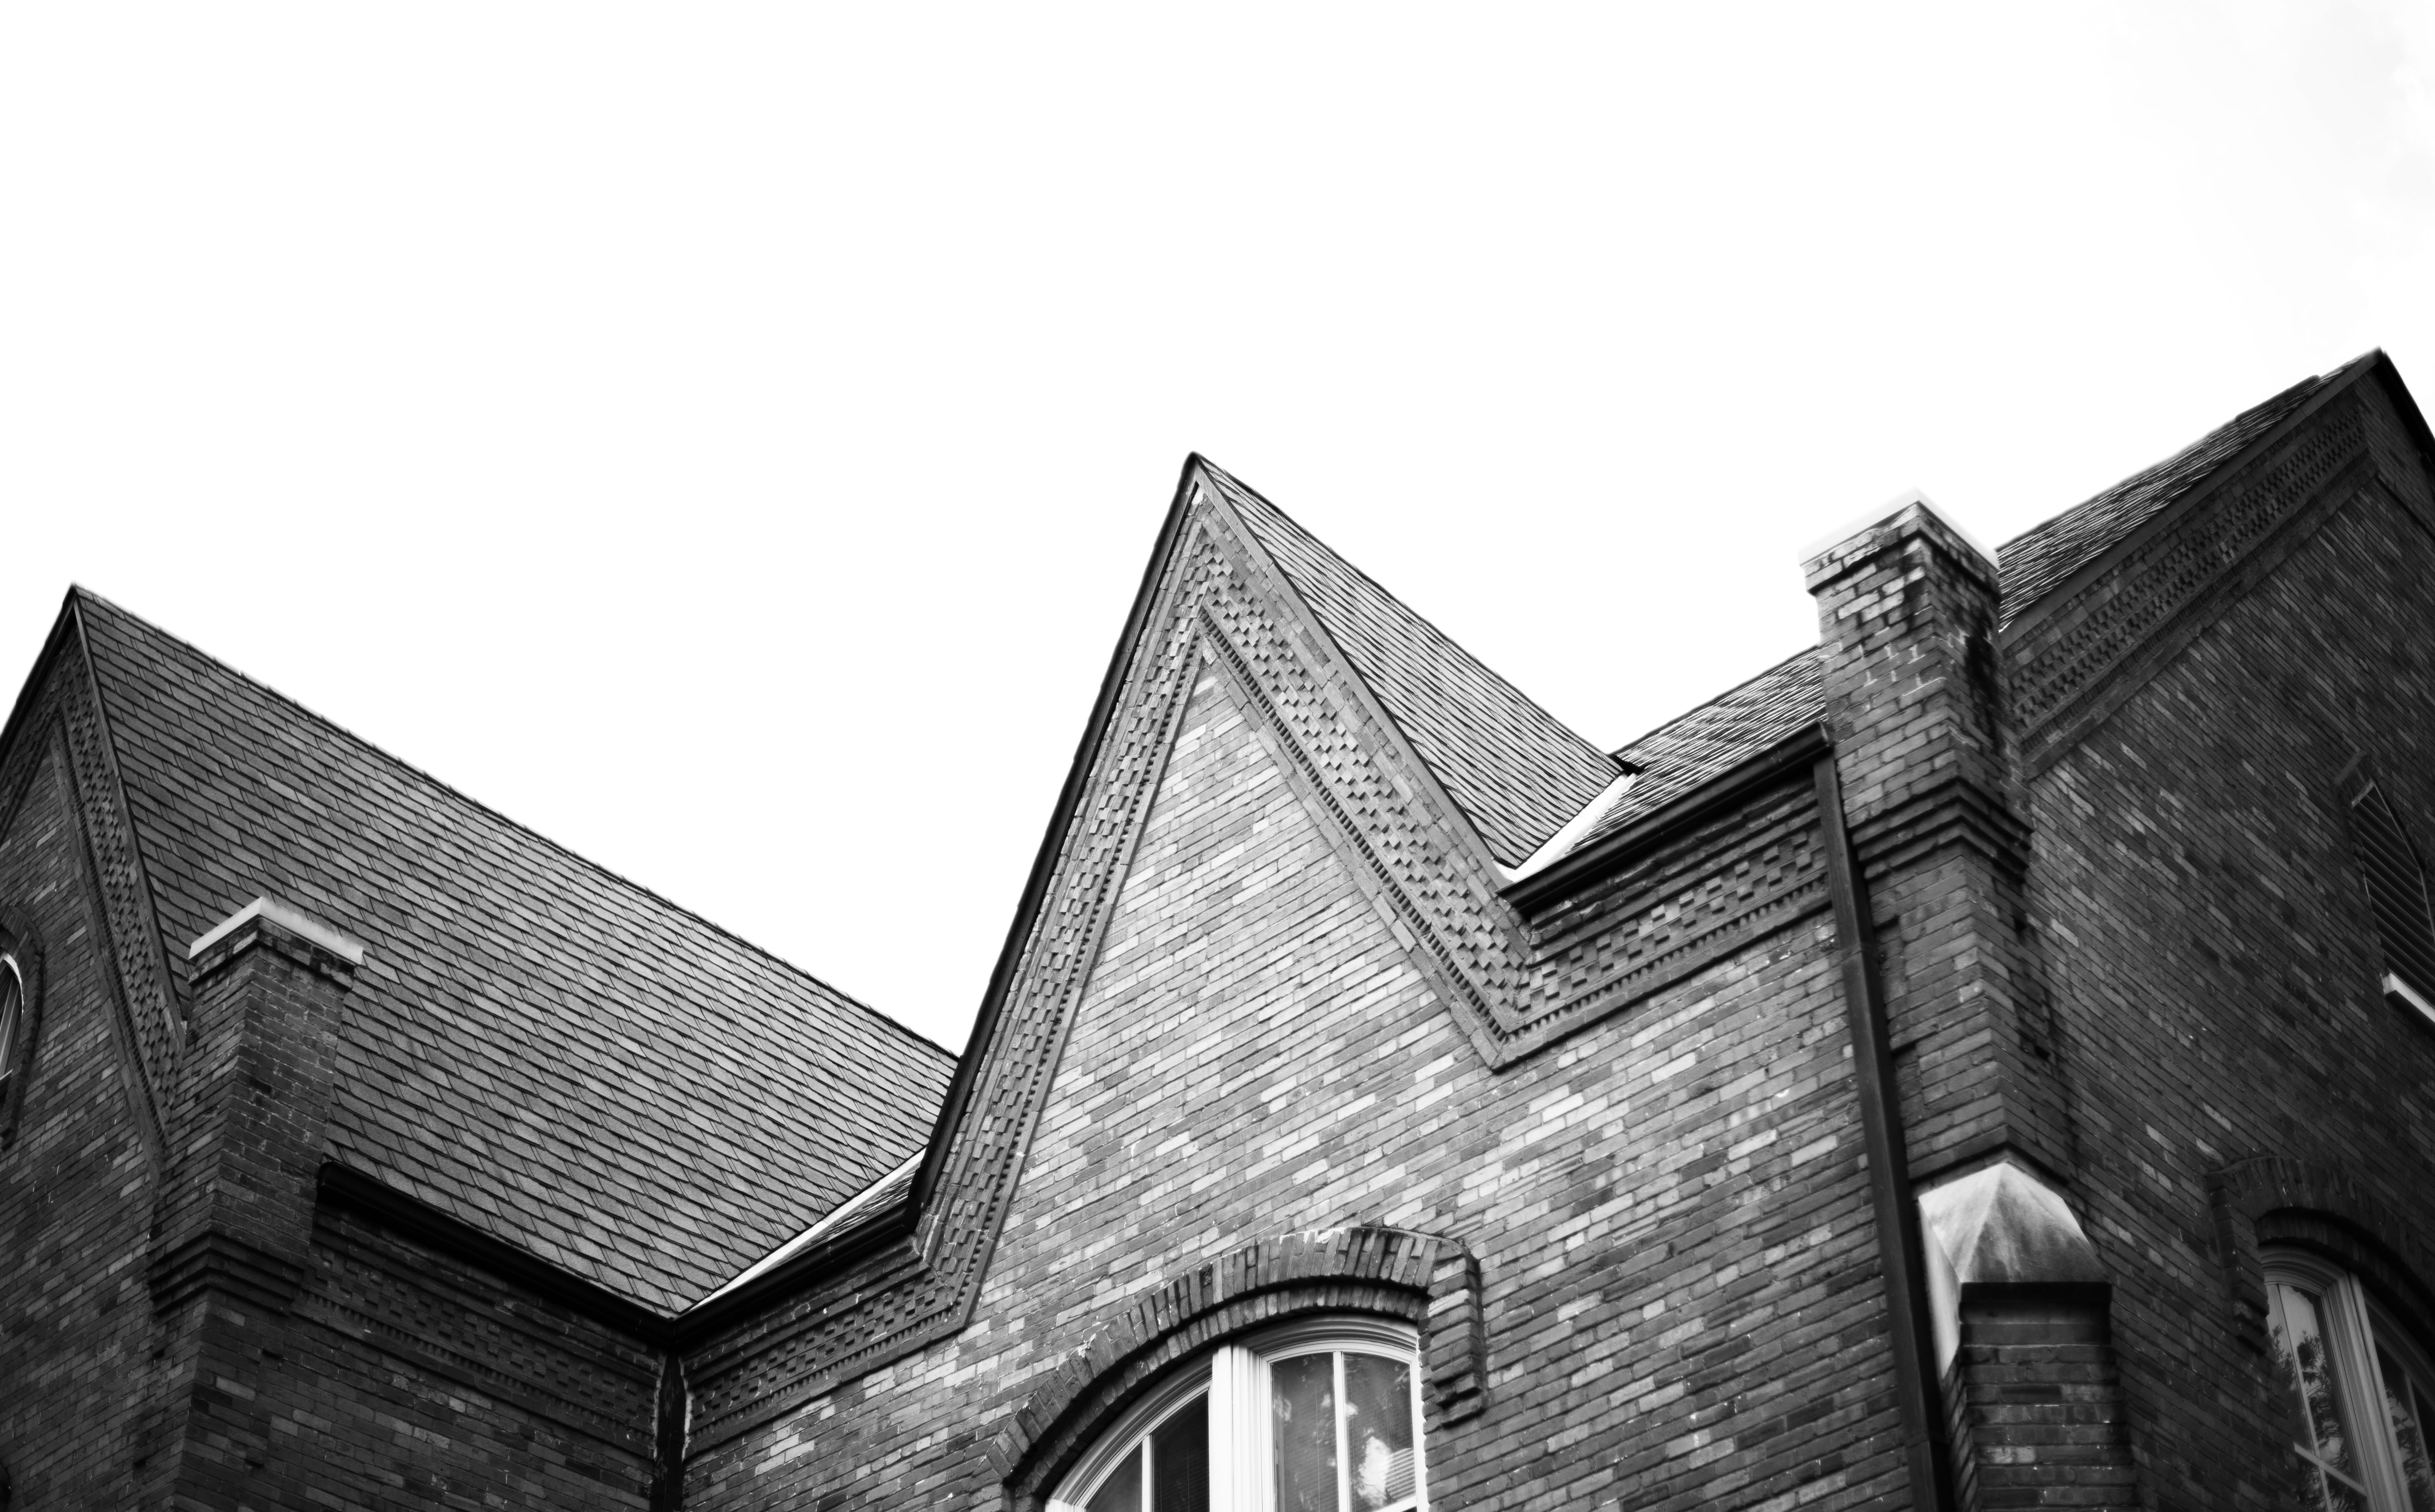 roofline of one of the Blount academic houses